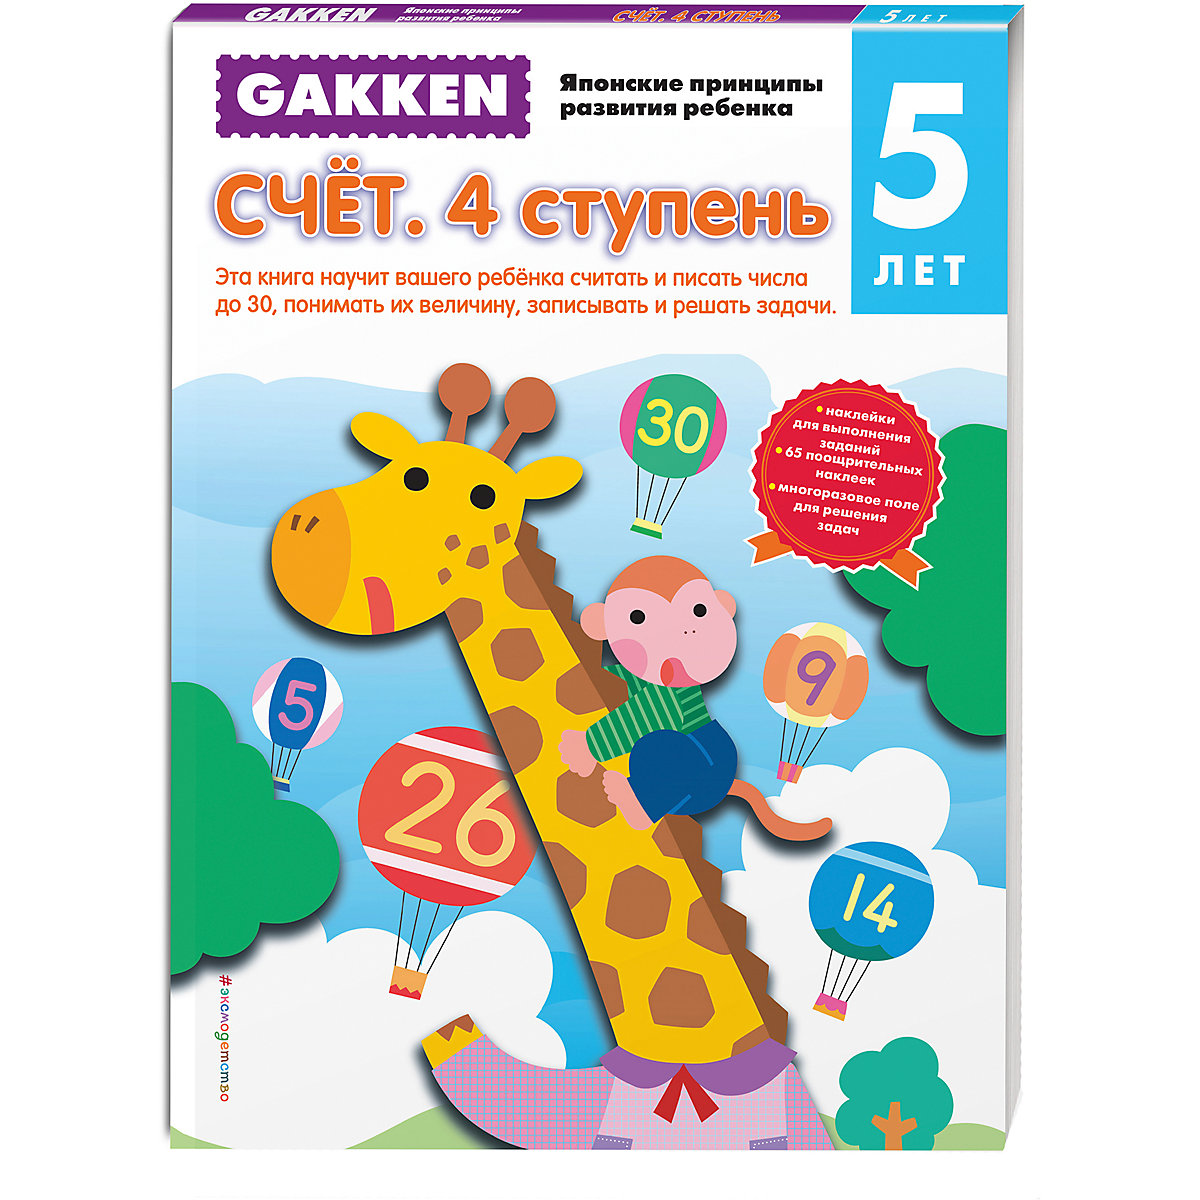 Books EKSMO 7367767 Children Education Encyclopedia Alphabet Dictionary Book For Baby MTpromo